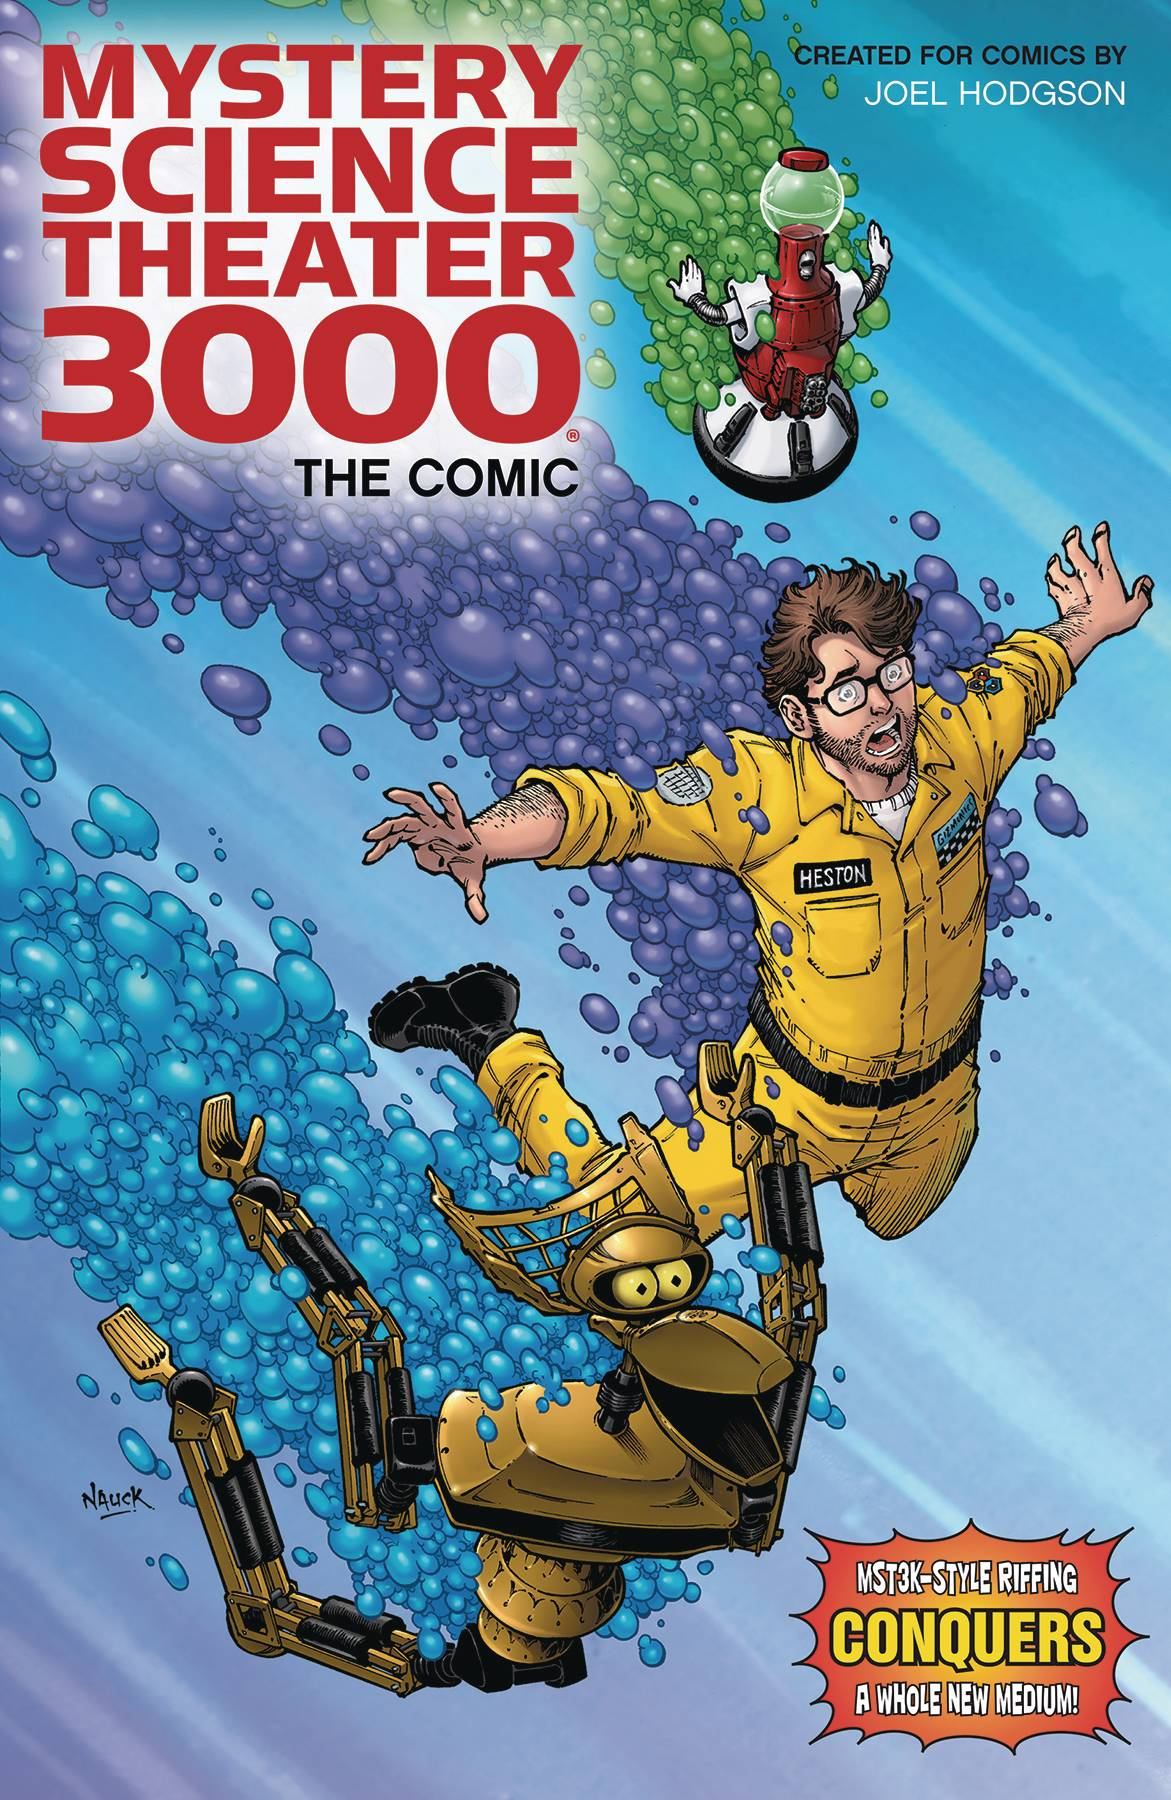 MYSTERY SCIENCE THEATER 3000 TP COMIC.jpg